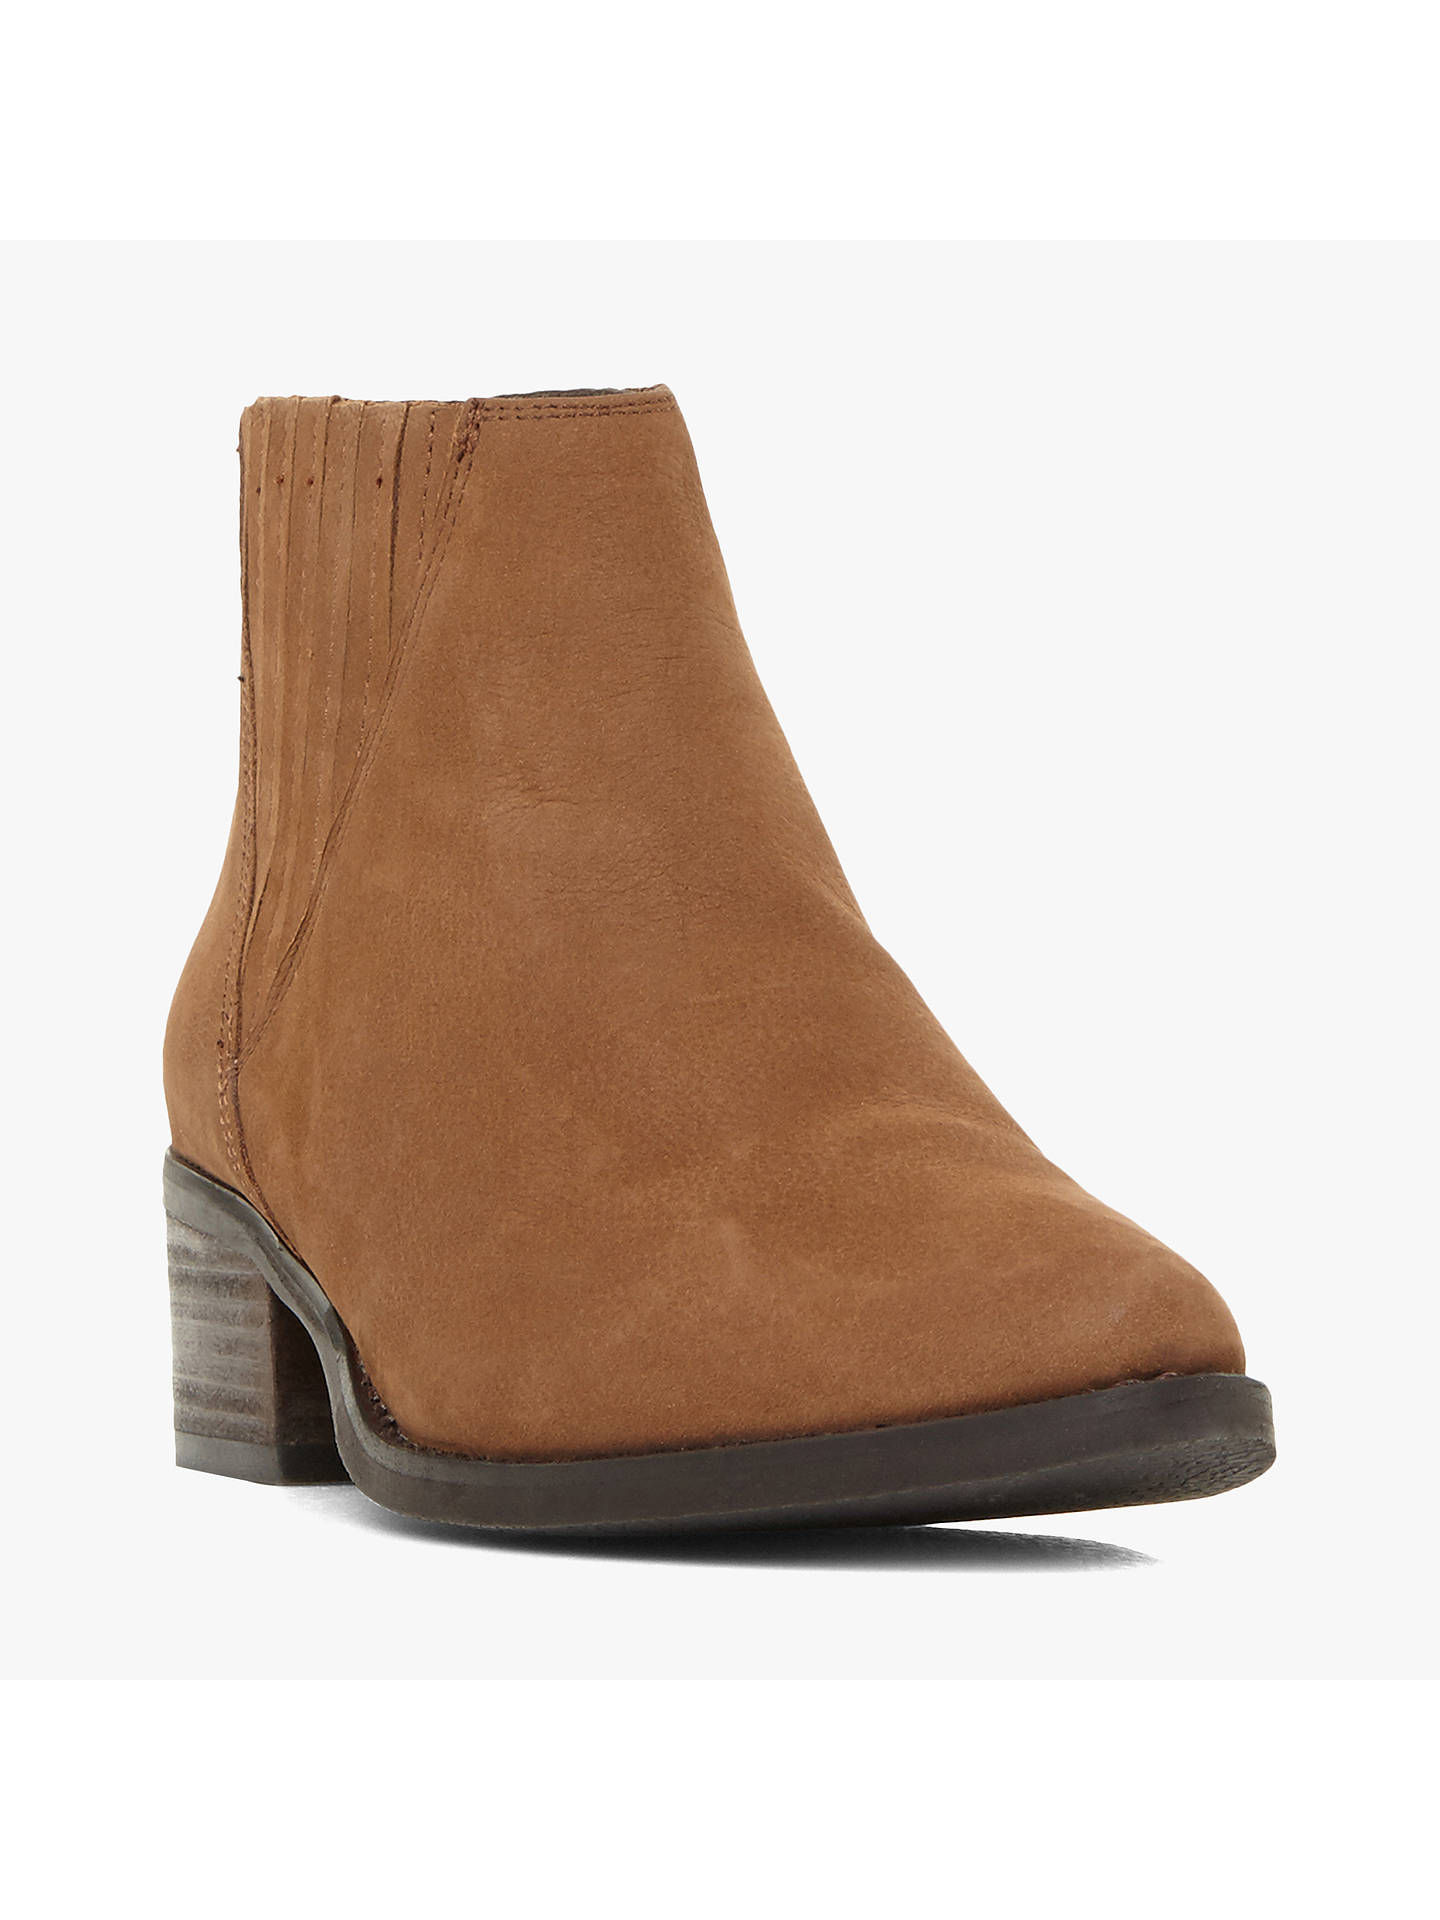 BuySteve Madden Always Stacked Heel Ankle Boots, Camel, 3 Online at johnlewis.com